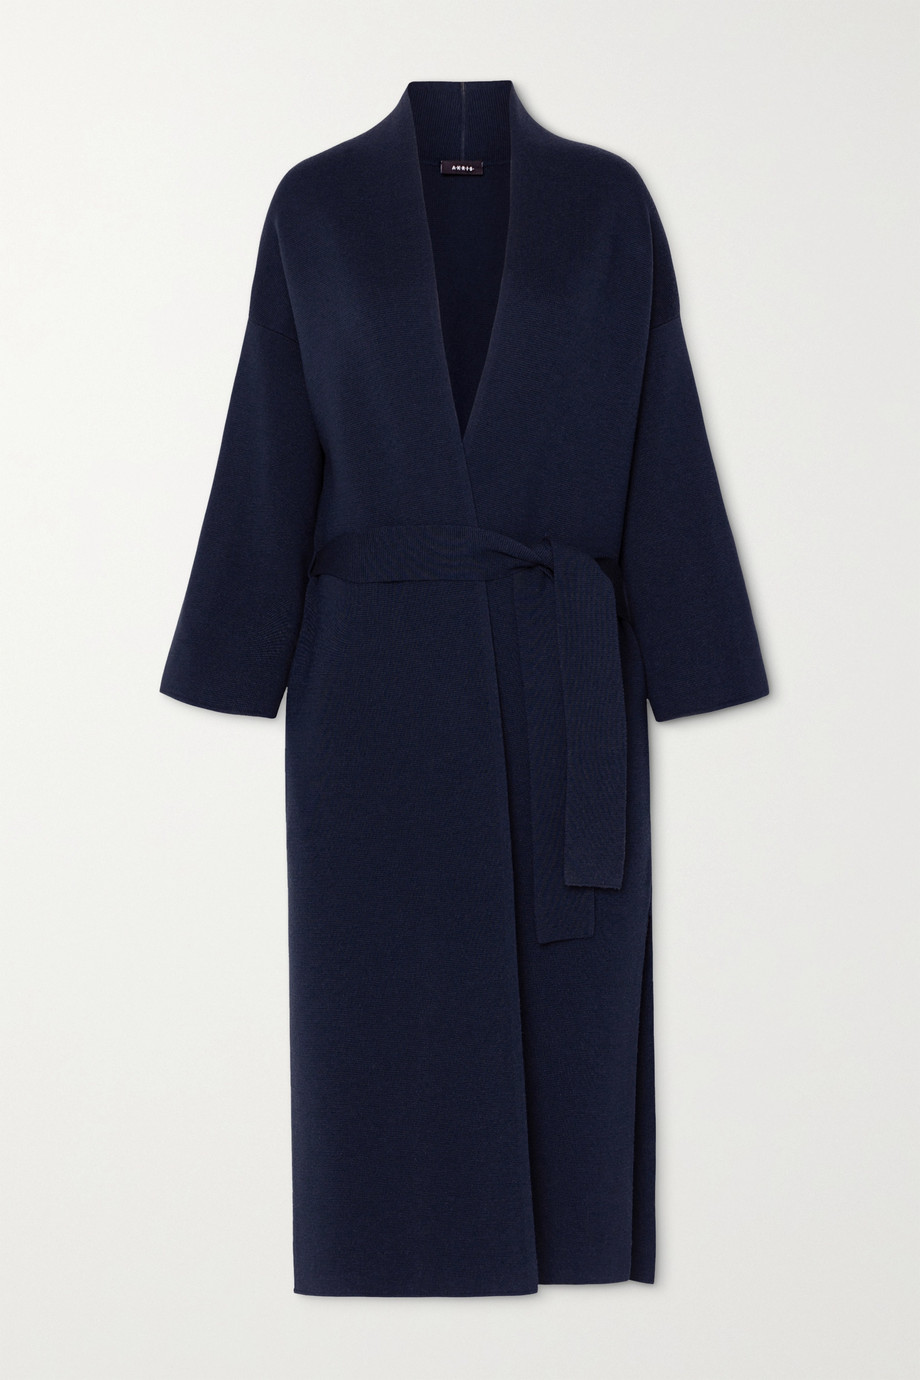 Akris Belted wool and silk-blend coat